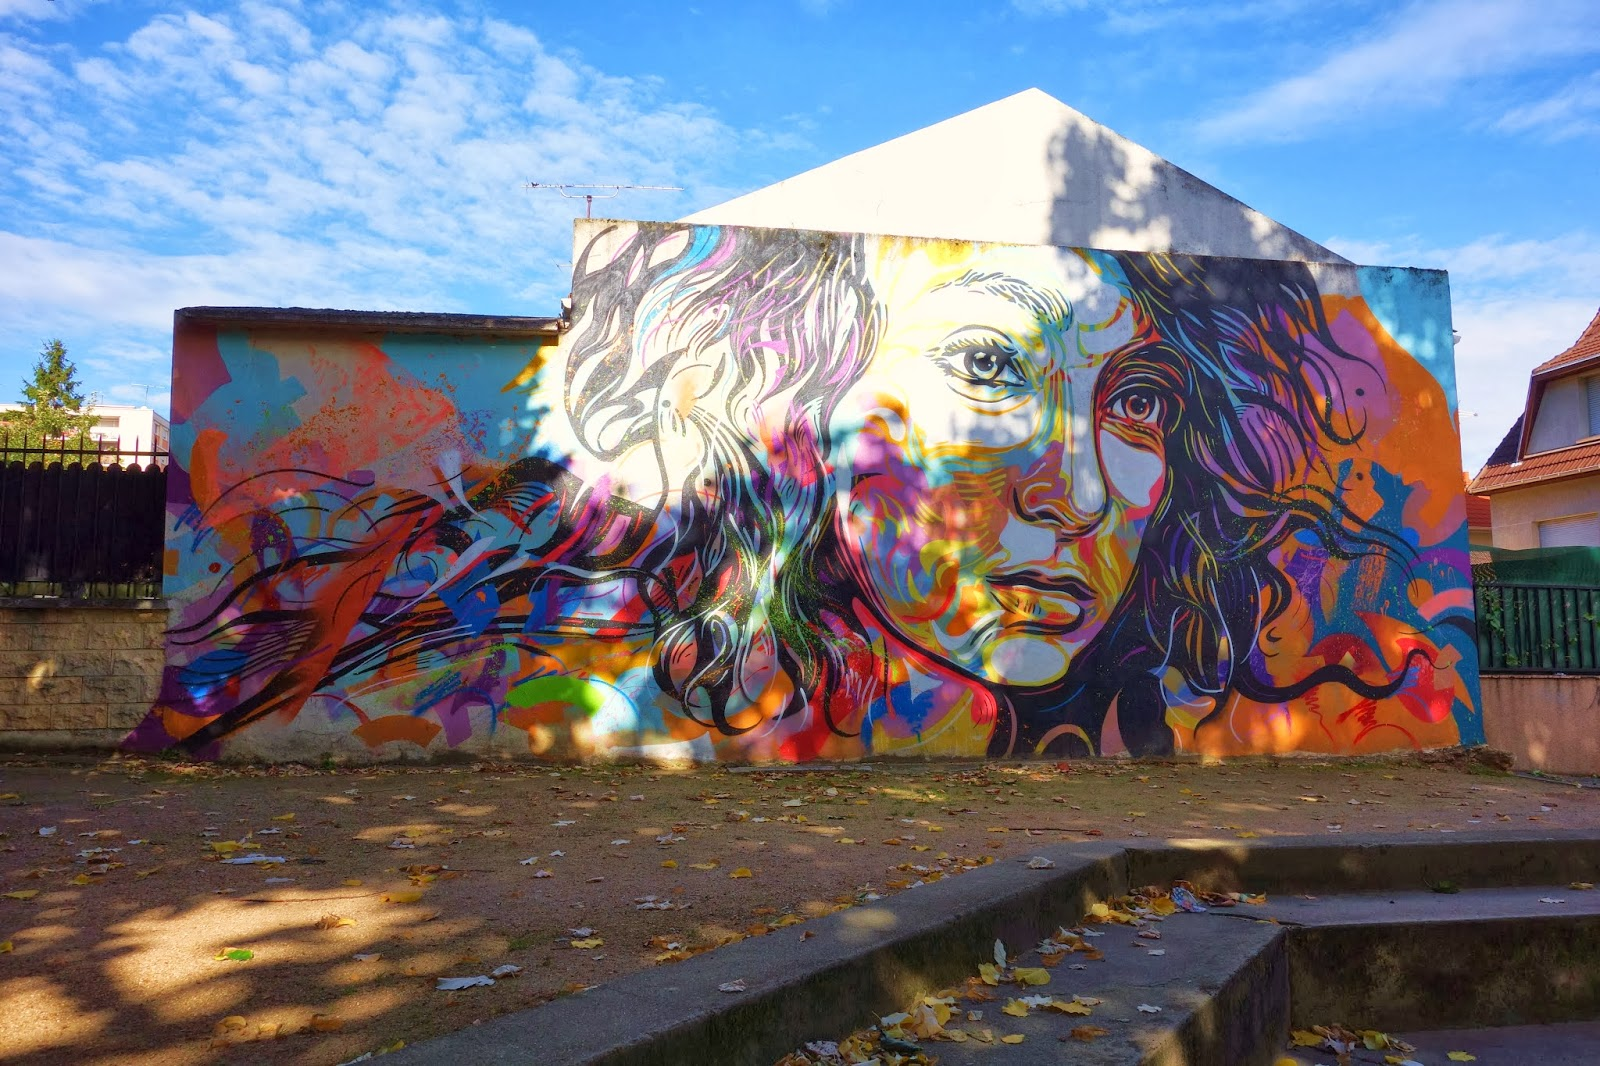 Sunday street art c215 rue camille groult vitry sur seine paris la douce - Piscine avec pente douce vitry sur seine ...